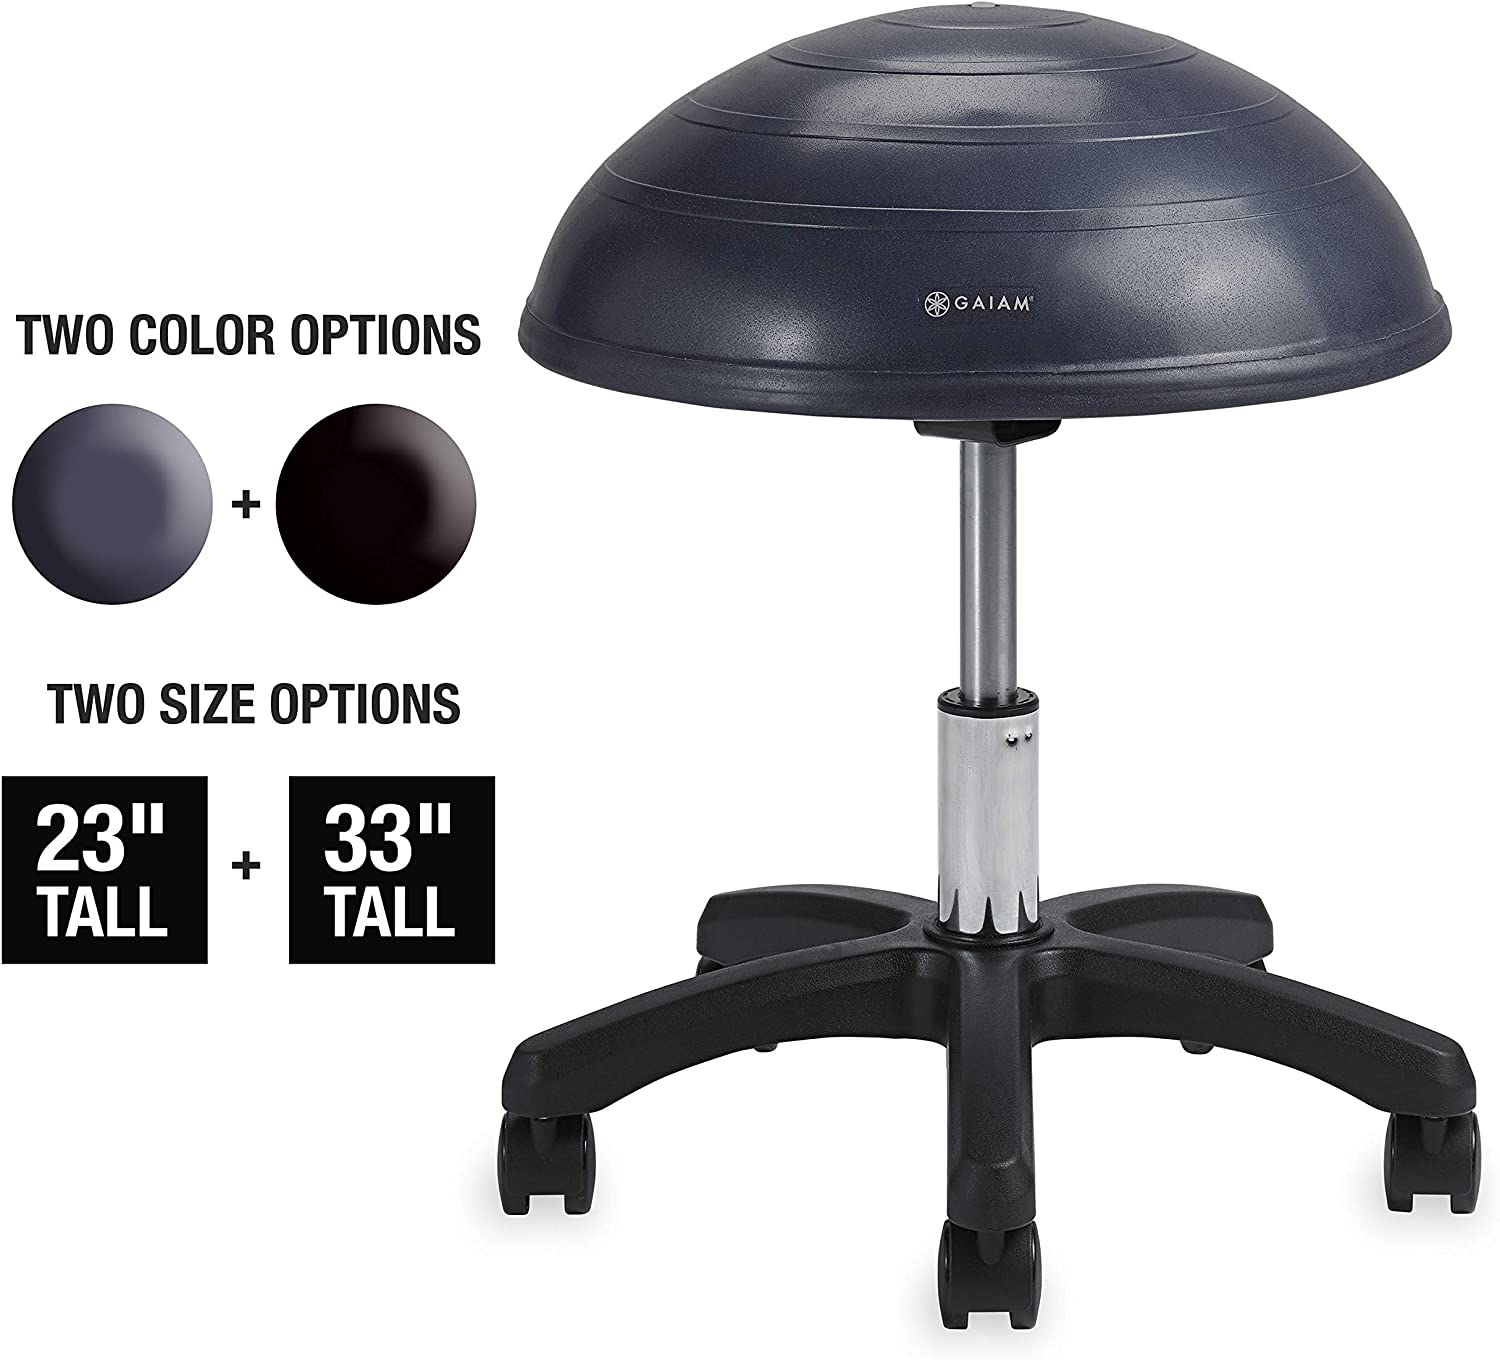 Gaiam Balance Ball Chair Stool, Half-Dome Stability Ball Adjustable Swivel Rolling Chair Drafting Stool for Desks in Office, Classroom, Doctors, Physicians, Massage Therapists, Salons - Granite 23